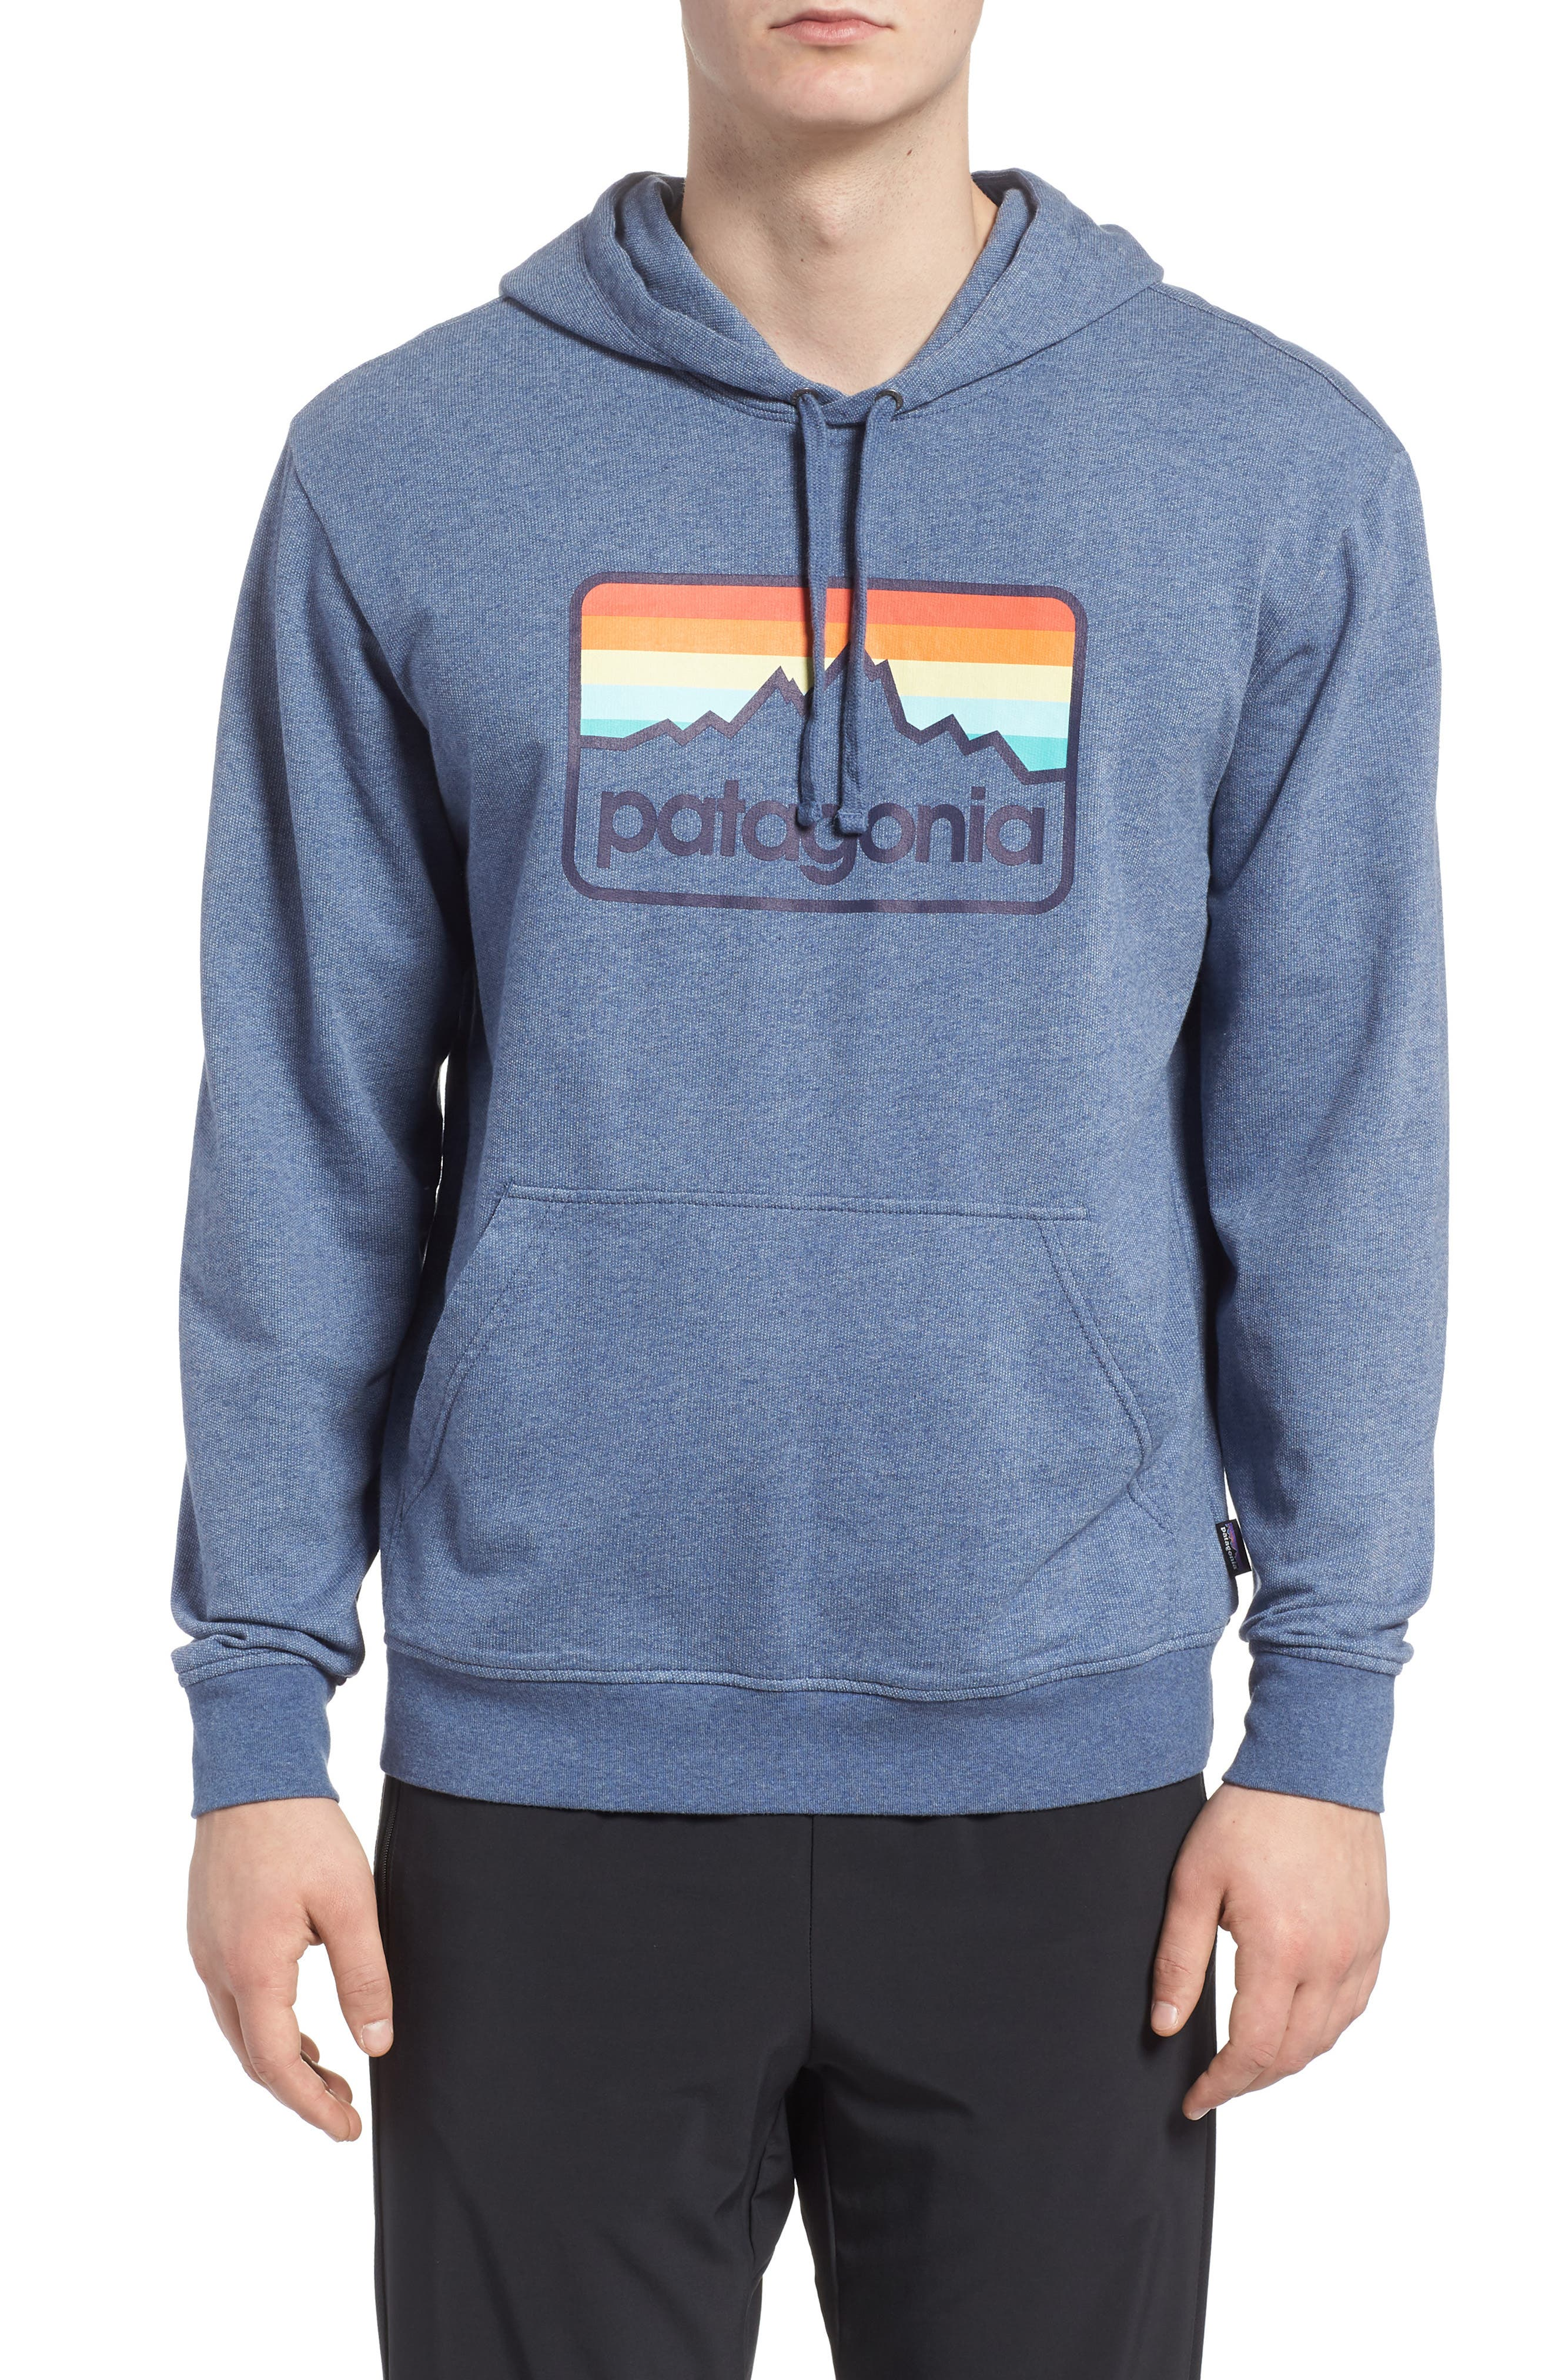 Polycycle Hoodie,                         Main,                         color, Feather Grey